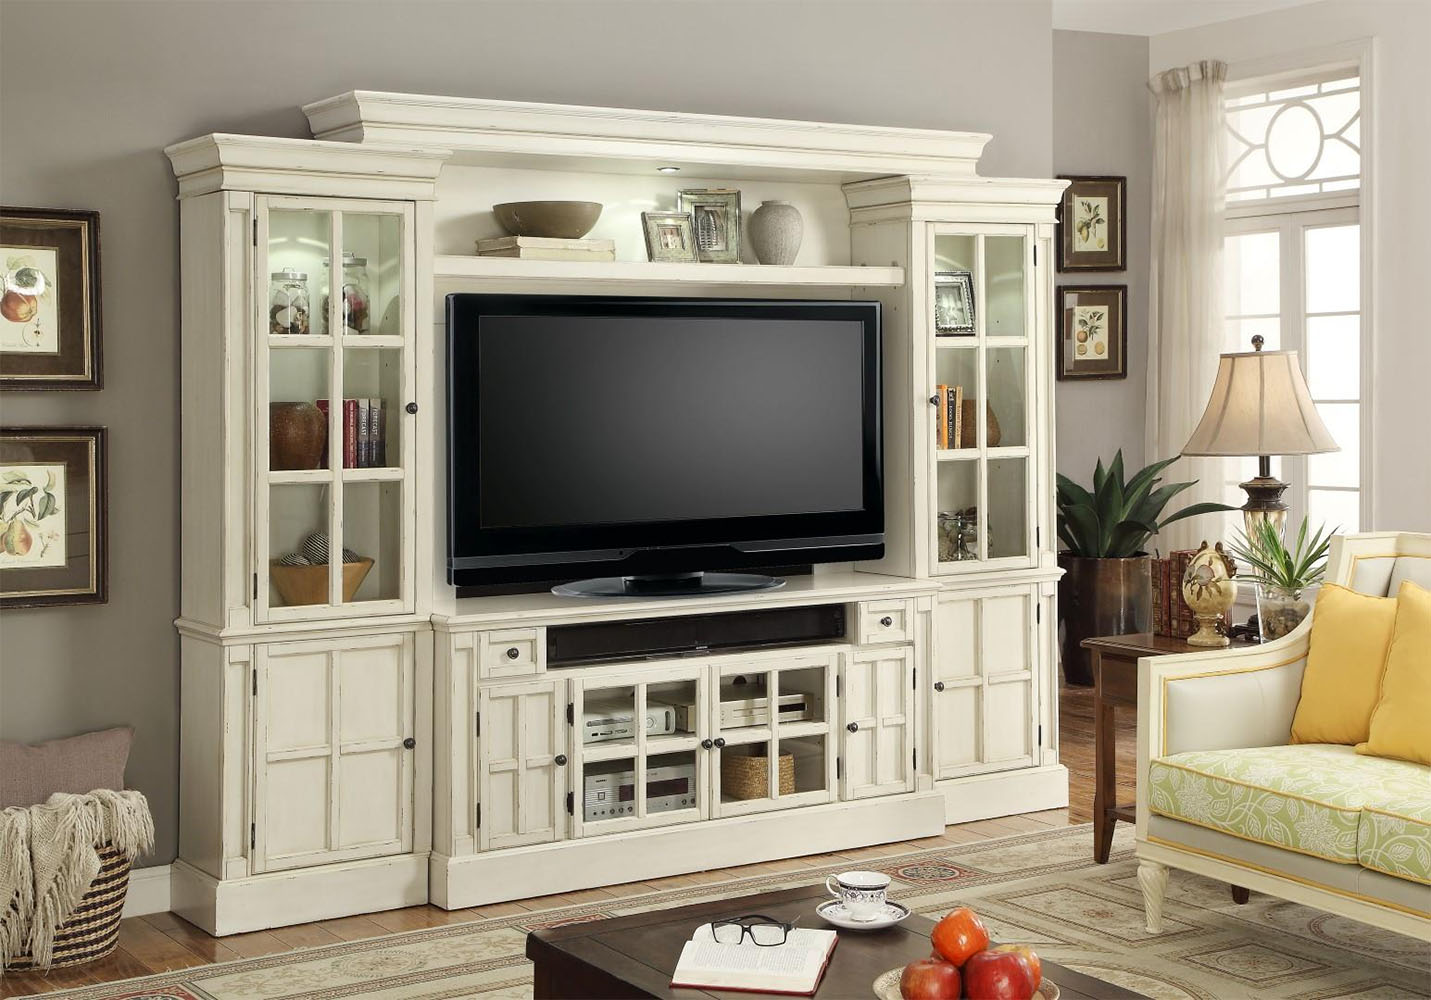 Parker House 62in TV Entertainment Center Wall Unit Charlotte PH CHA 162 4